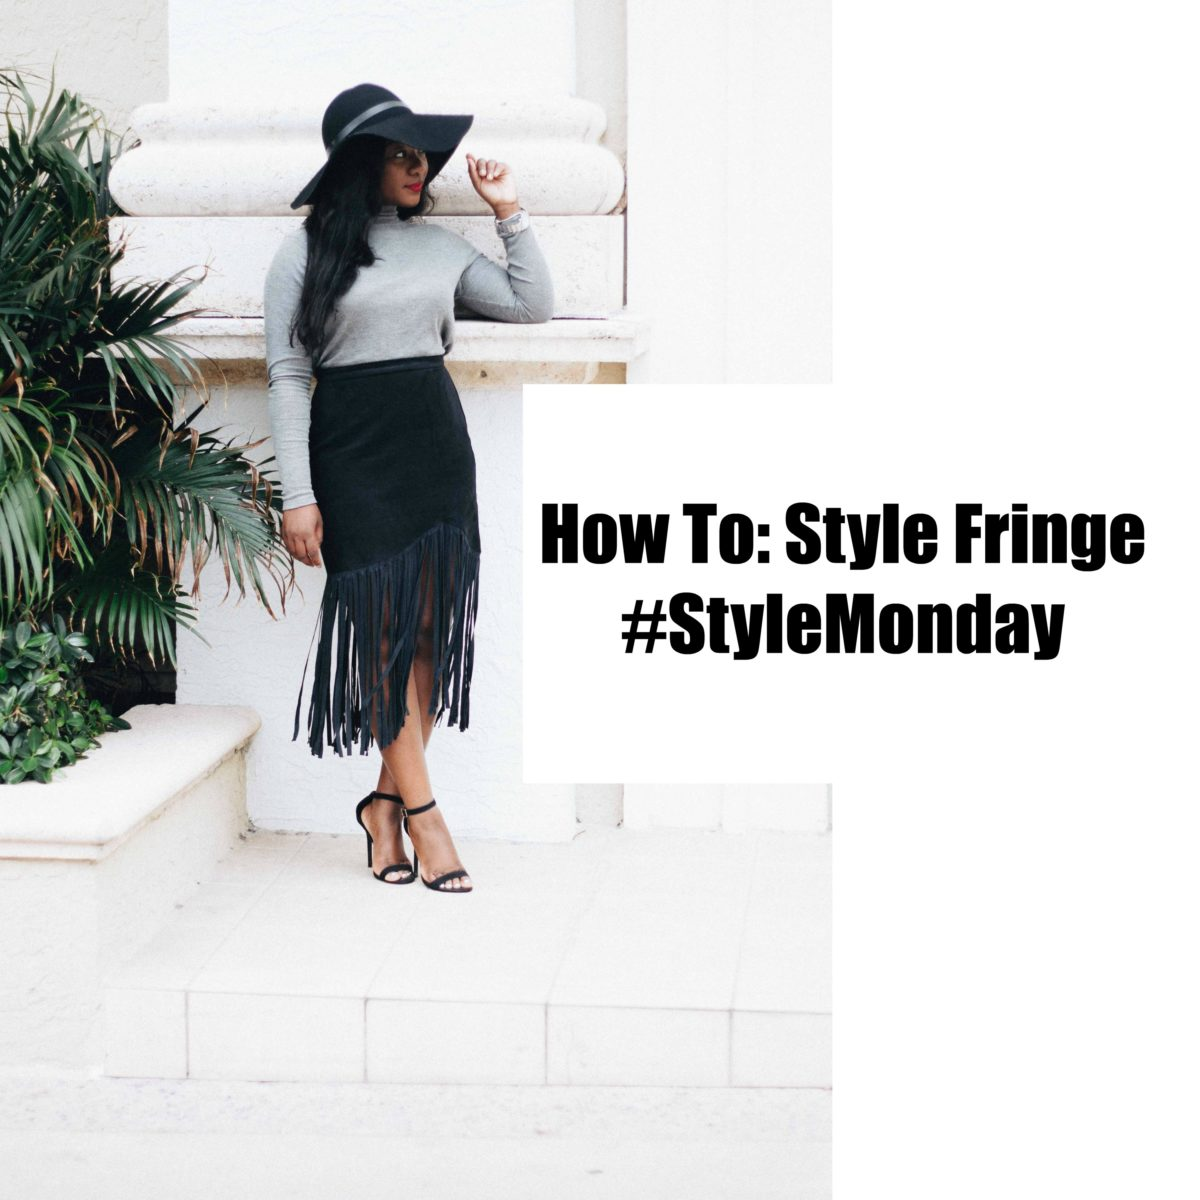 How To: Style Fringe